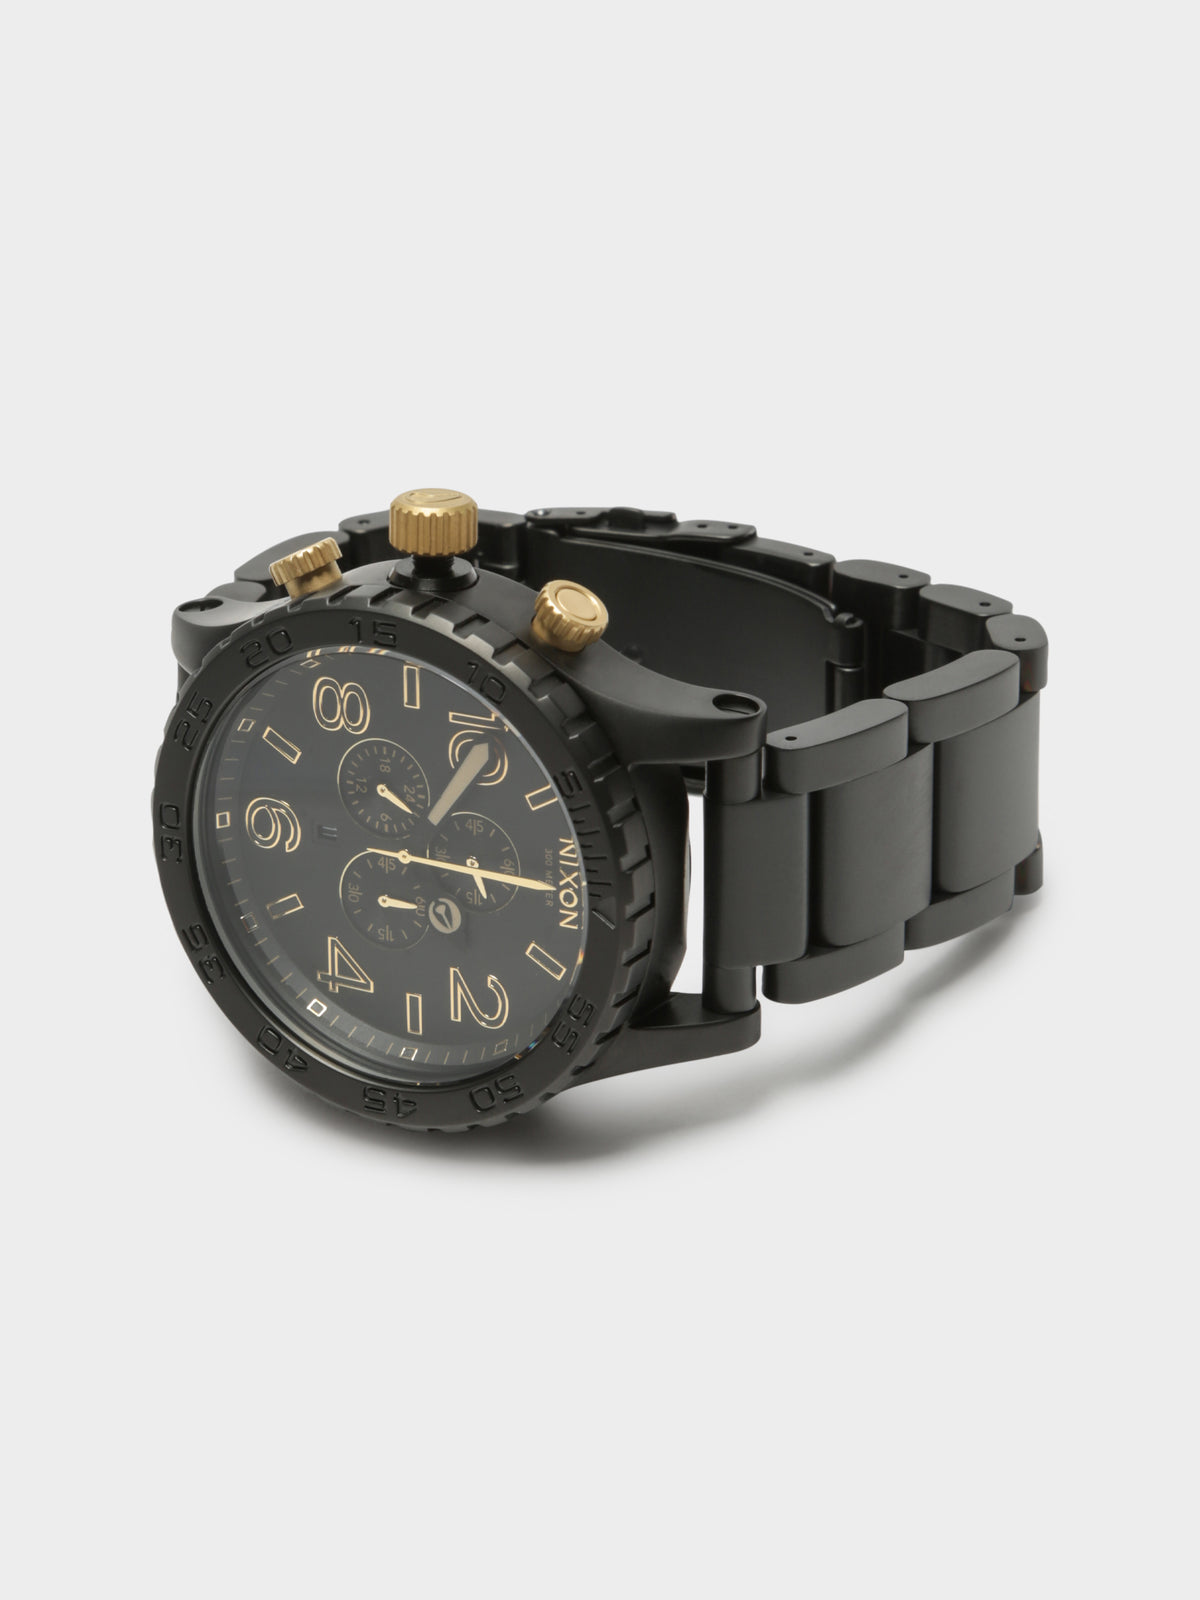 51-30 Chrono 51mm Oversized Chronograph Watch in Matte Black